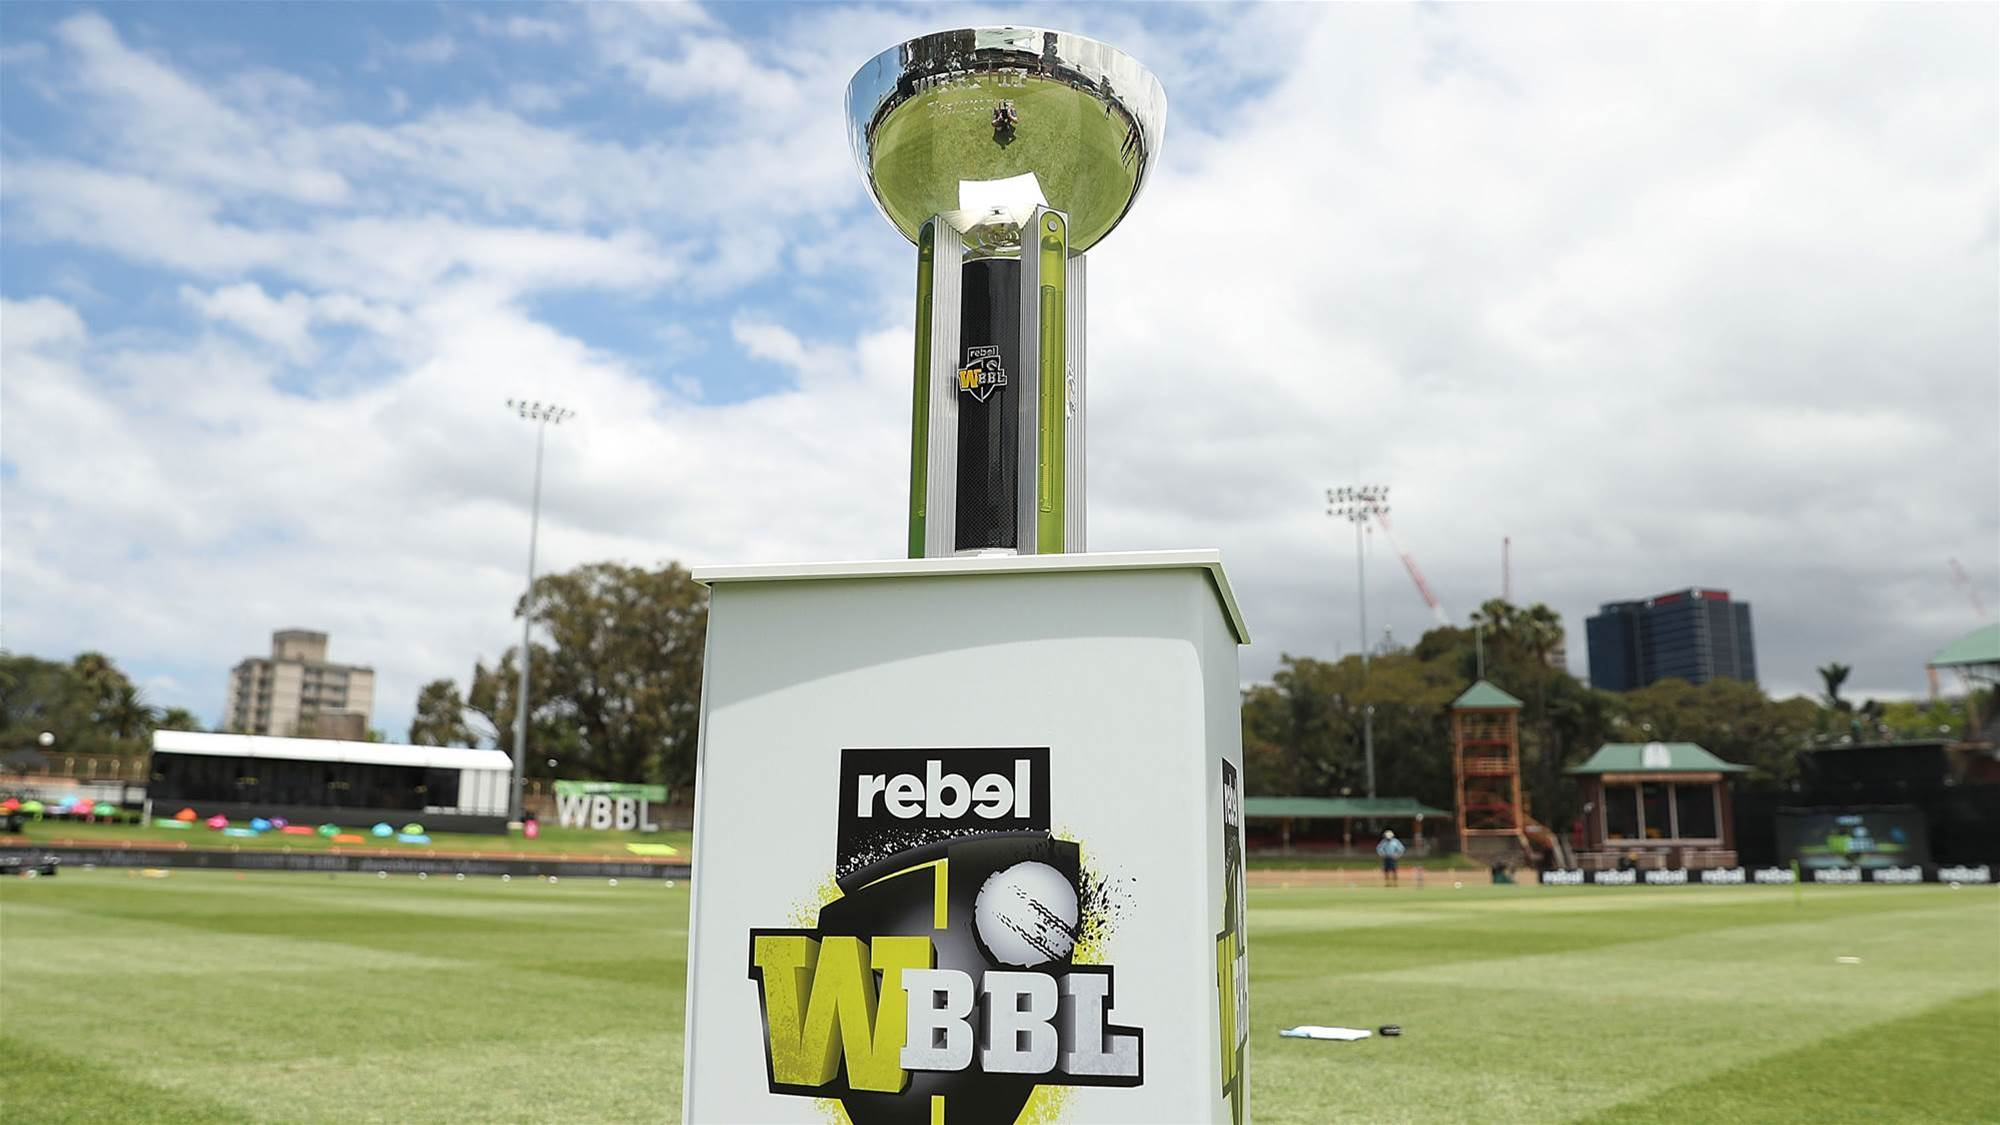 WBBL04: Everything you need to know